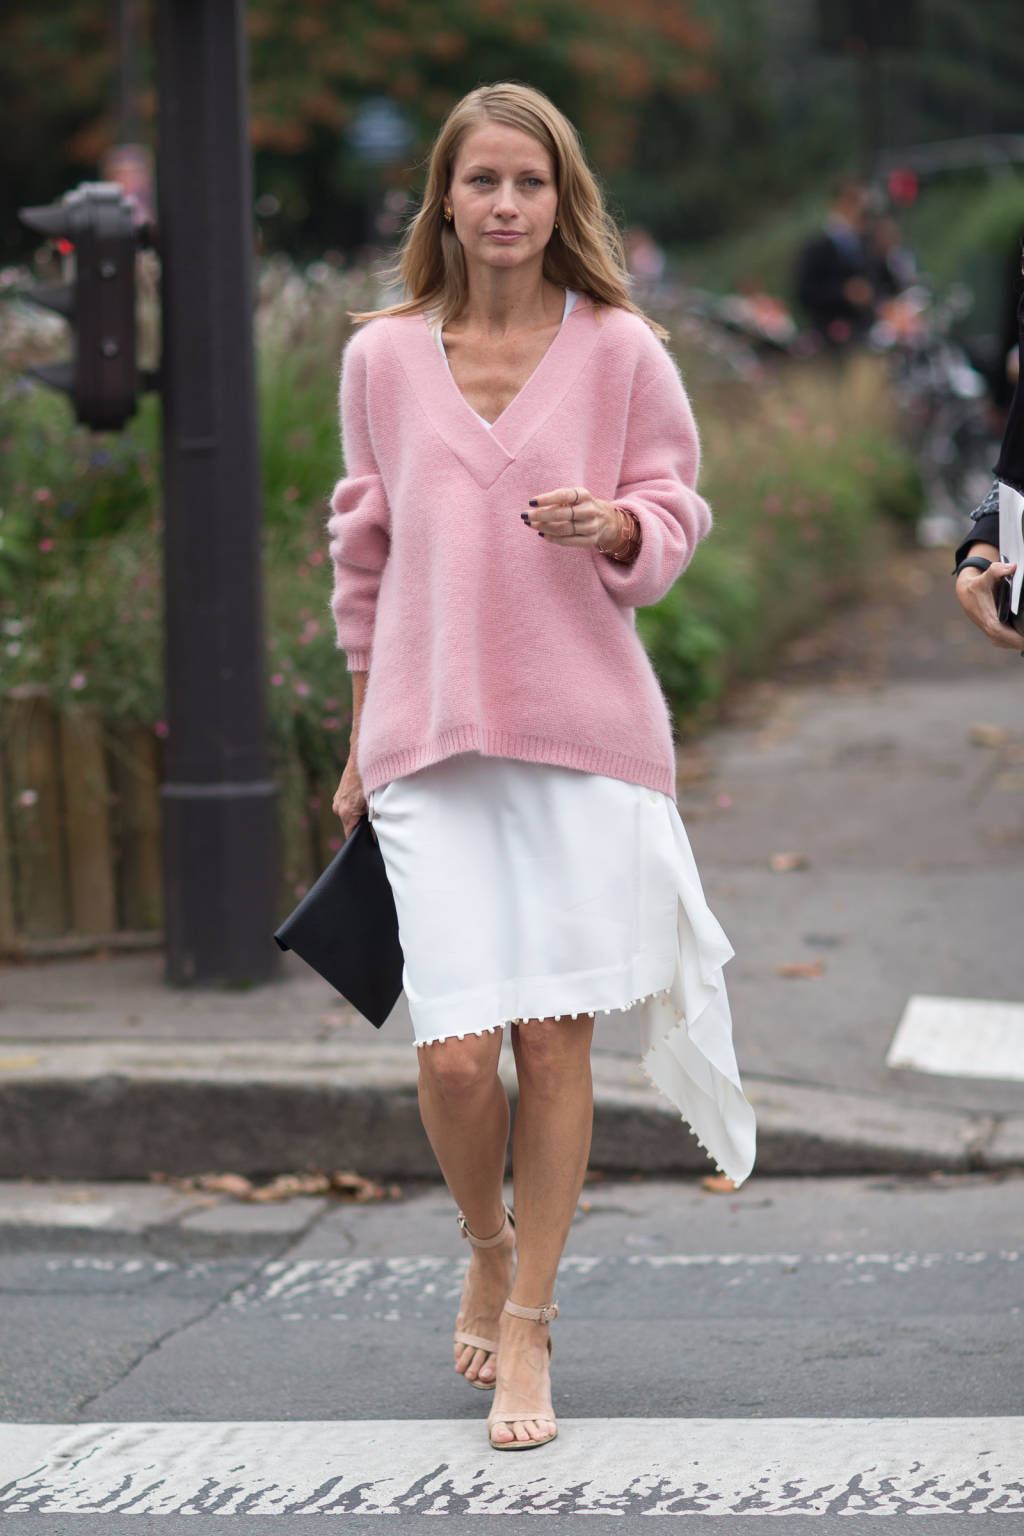 hbz-street-style-trend-pink-006-lg